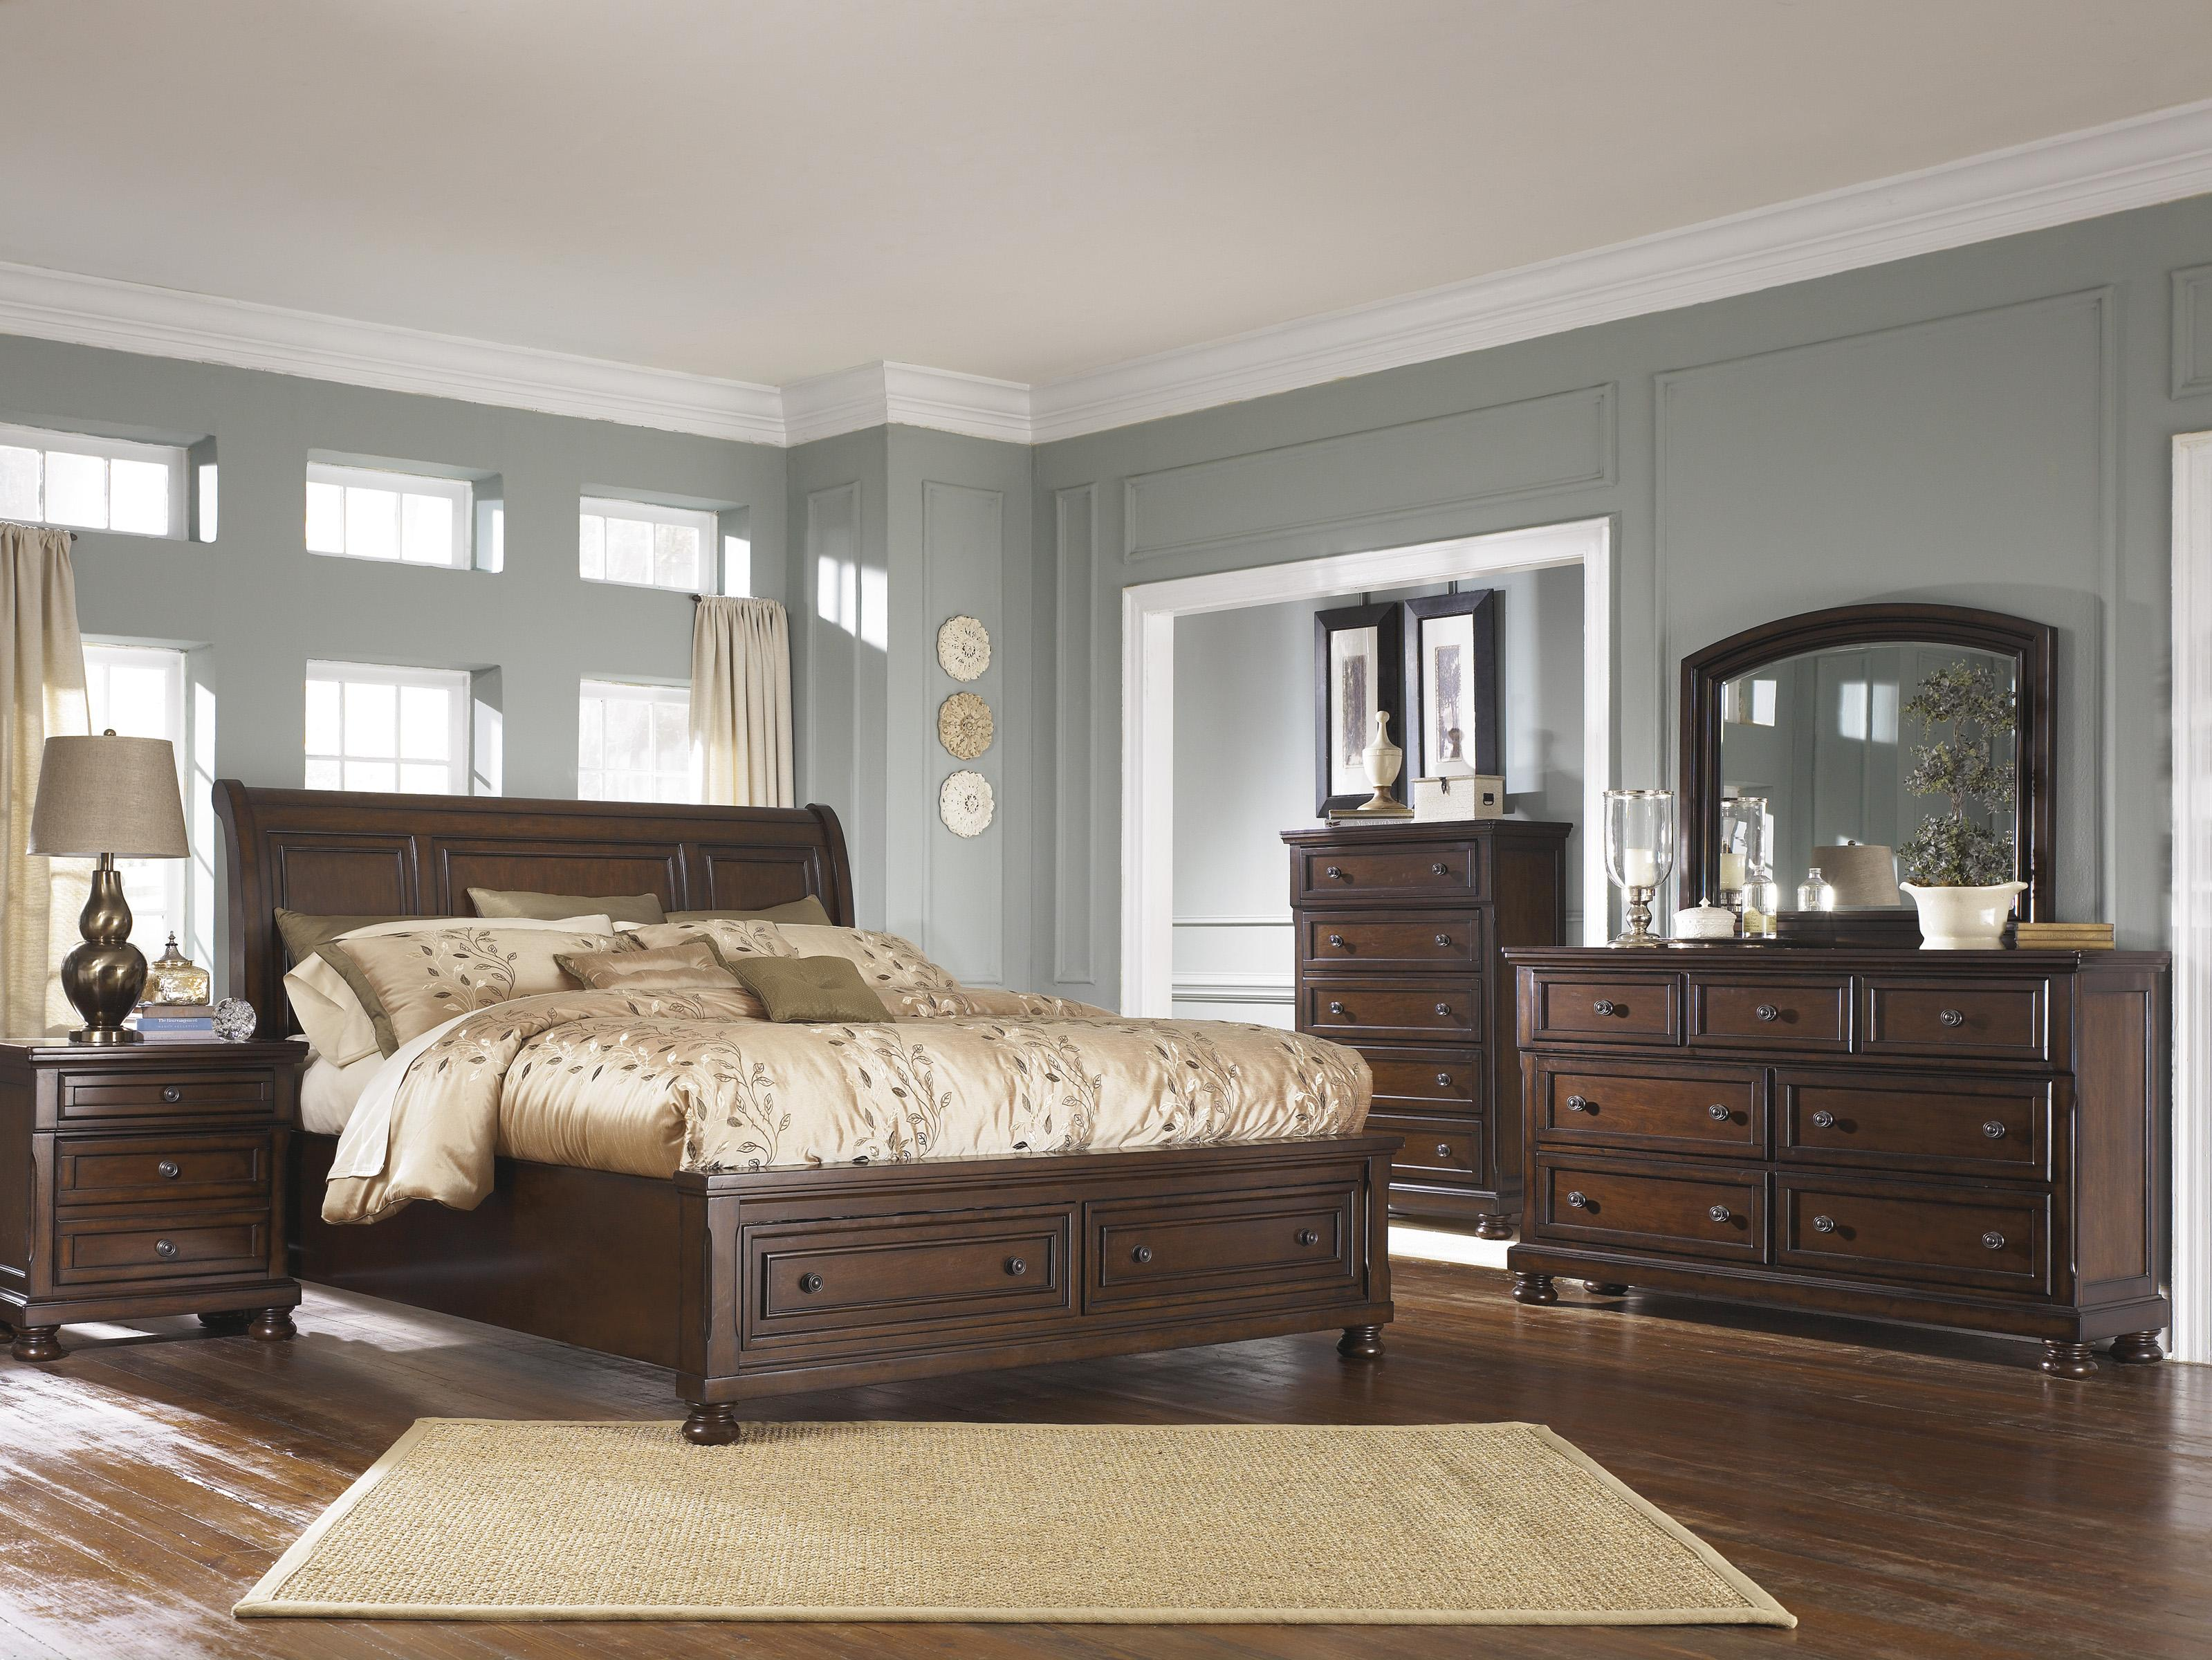 Ashley Furniture Porter King Bedroom Group - Item Number: B697 K Bedroom Group 3